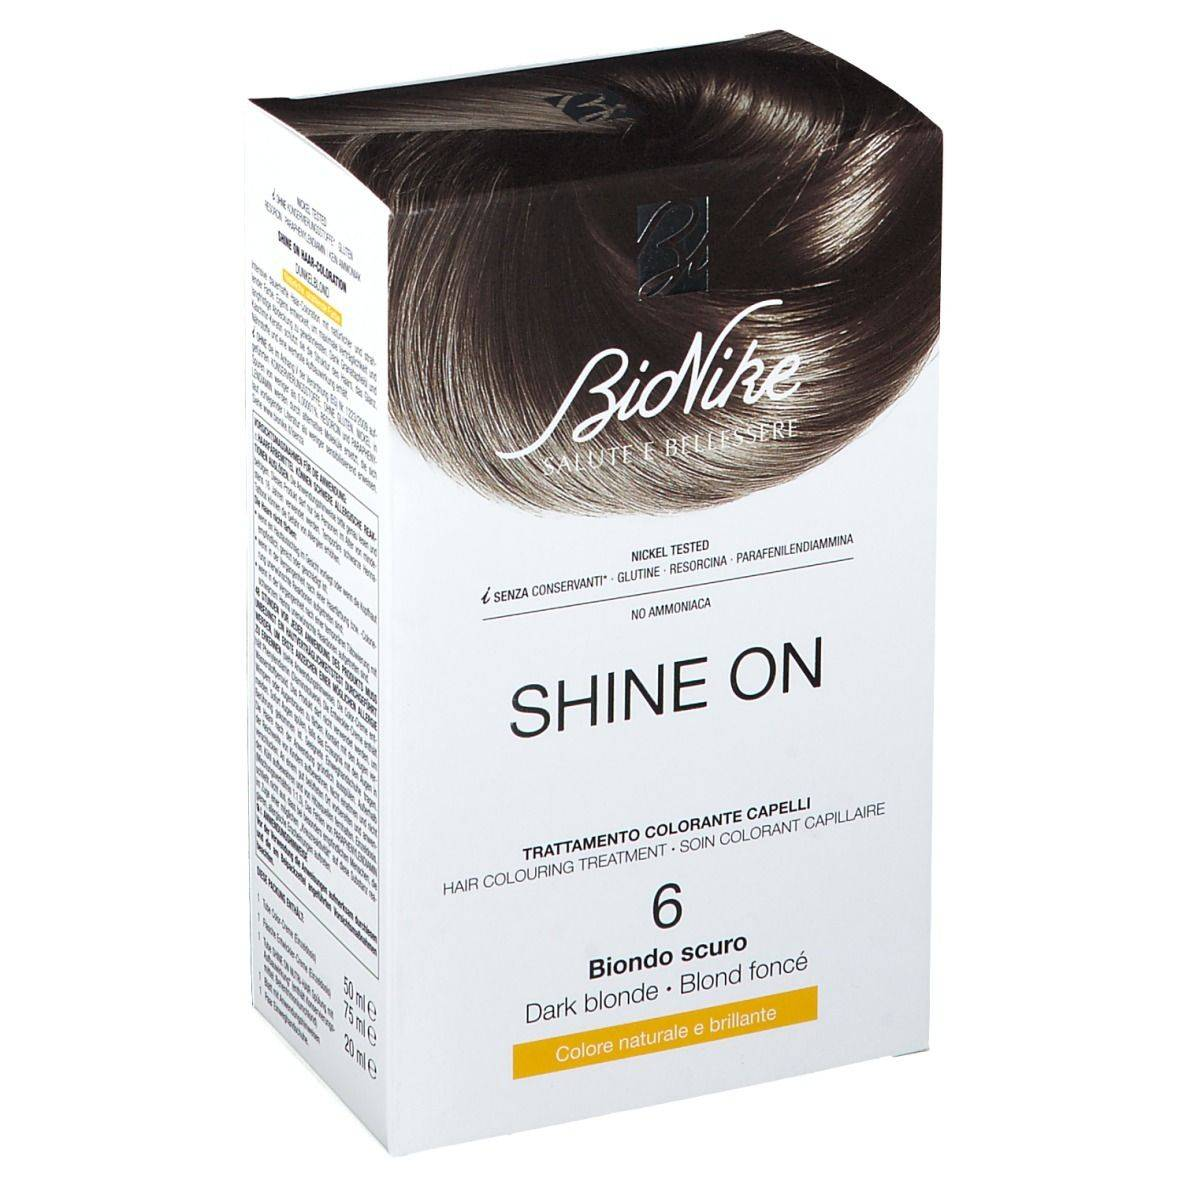 Bionike SHINE ON Biondo Scuro 6 1 pz Lozione